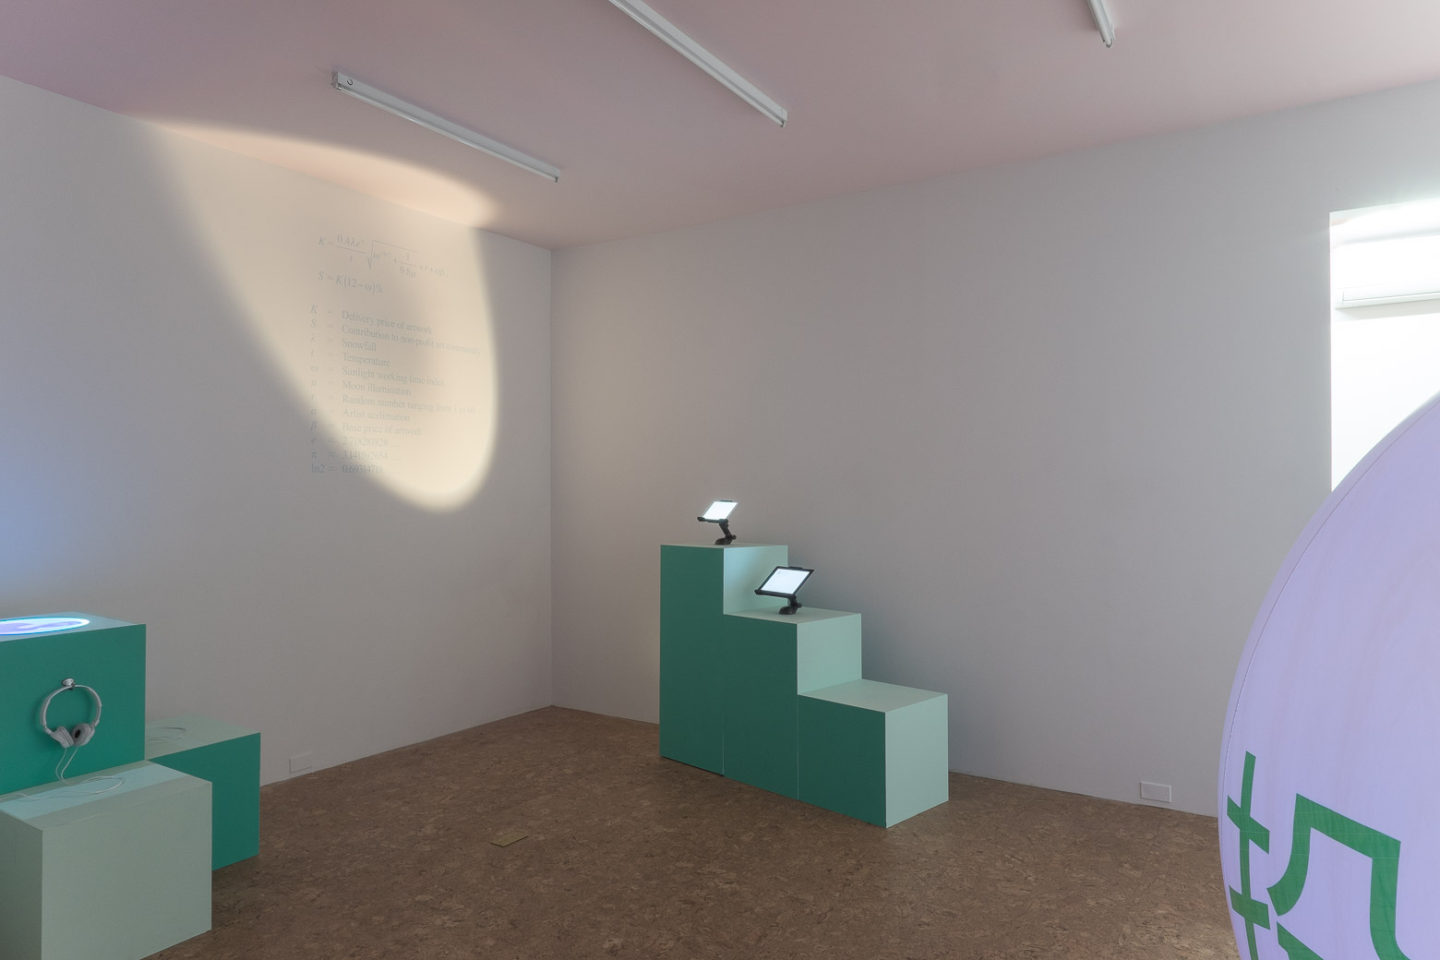 P!, Wong Kit Yi: North Pole Futures, installation view, 2015